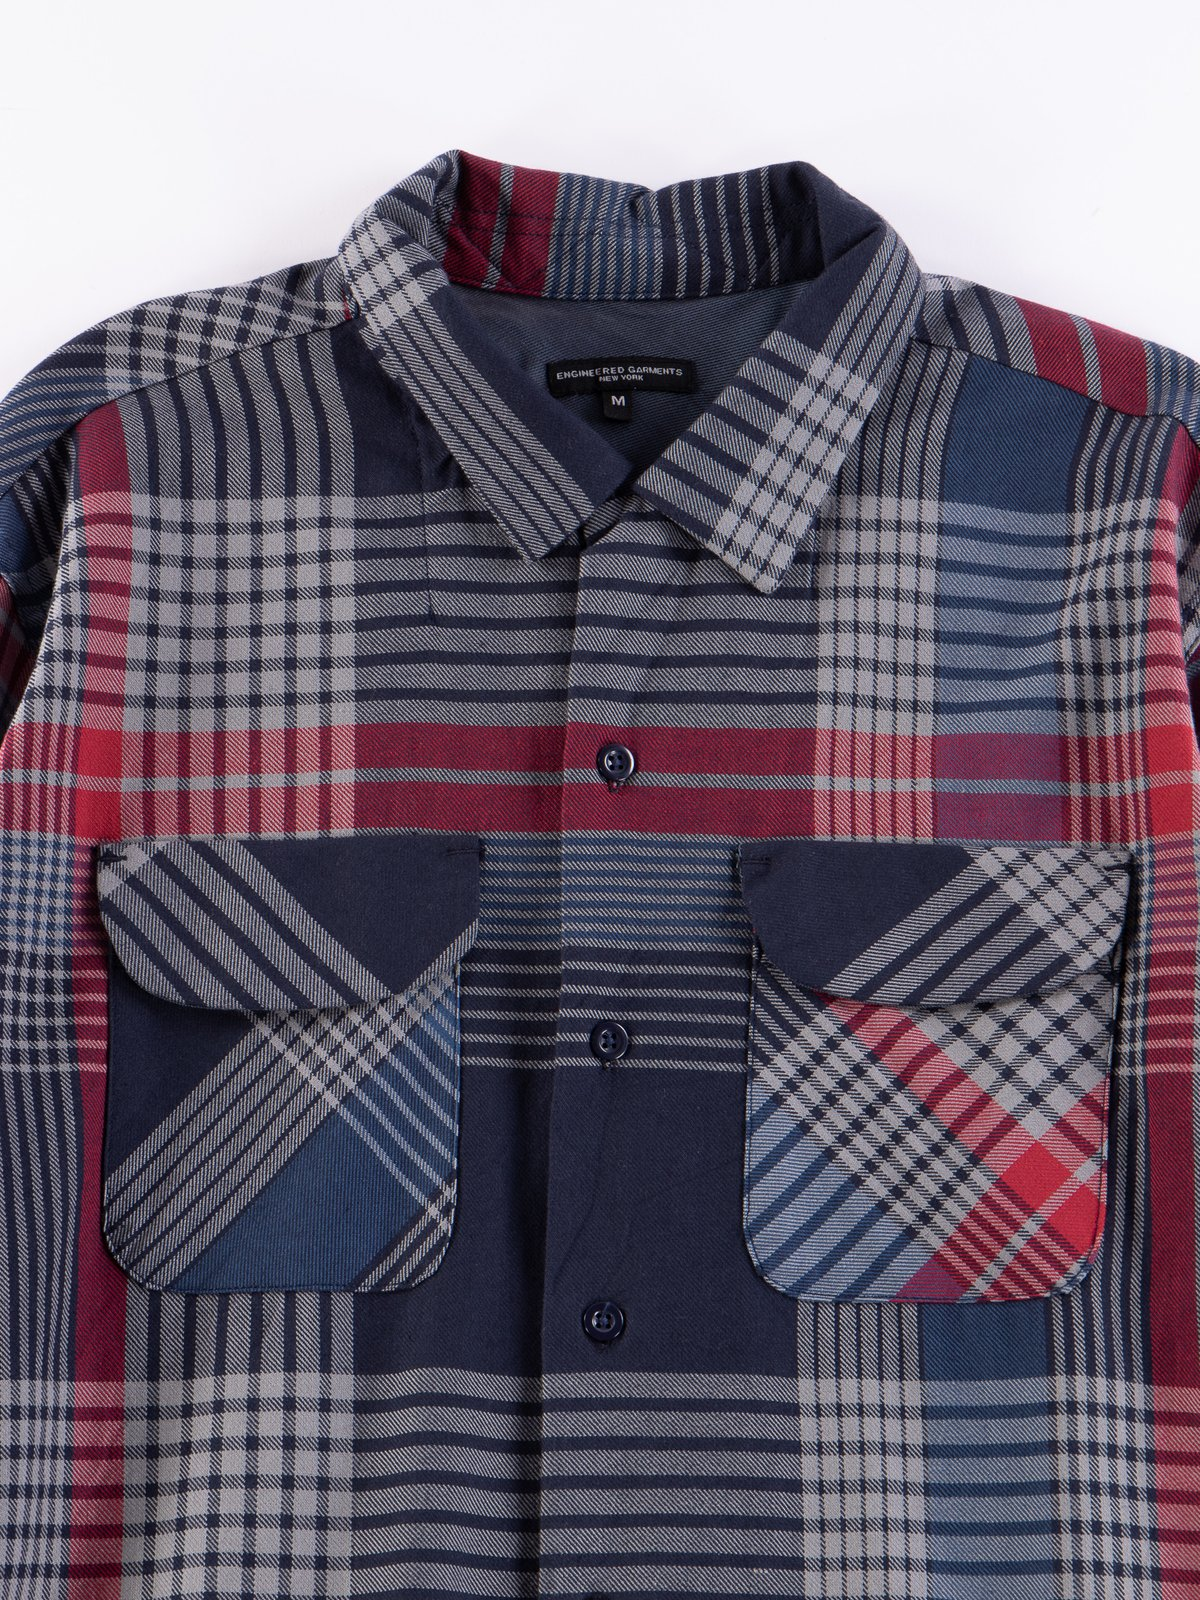 Navy/Grey/Red Cotton Twill Classic Shirt - Image 3